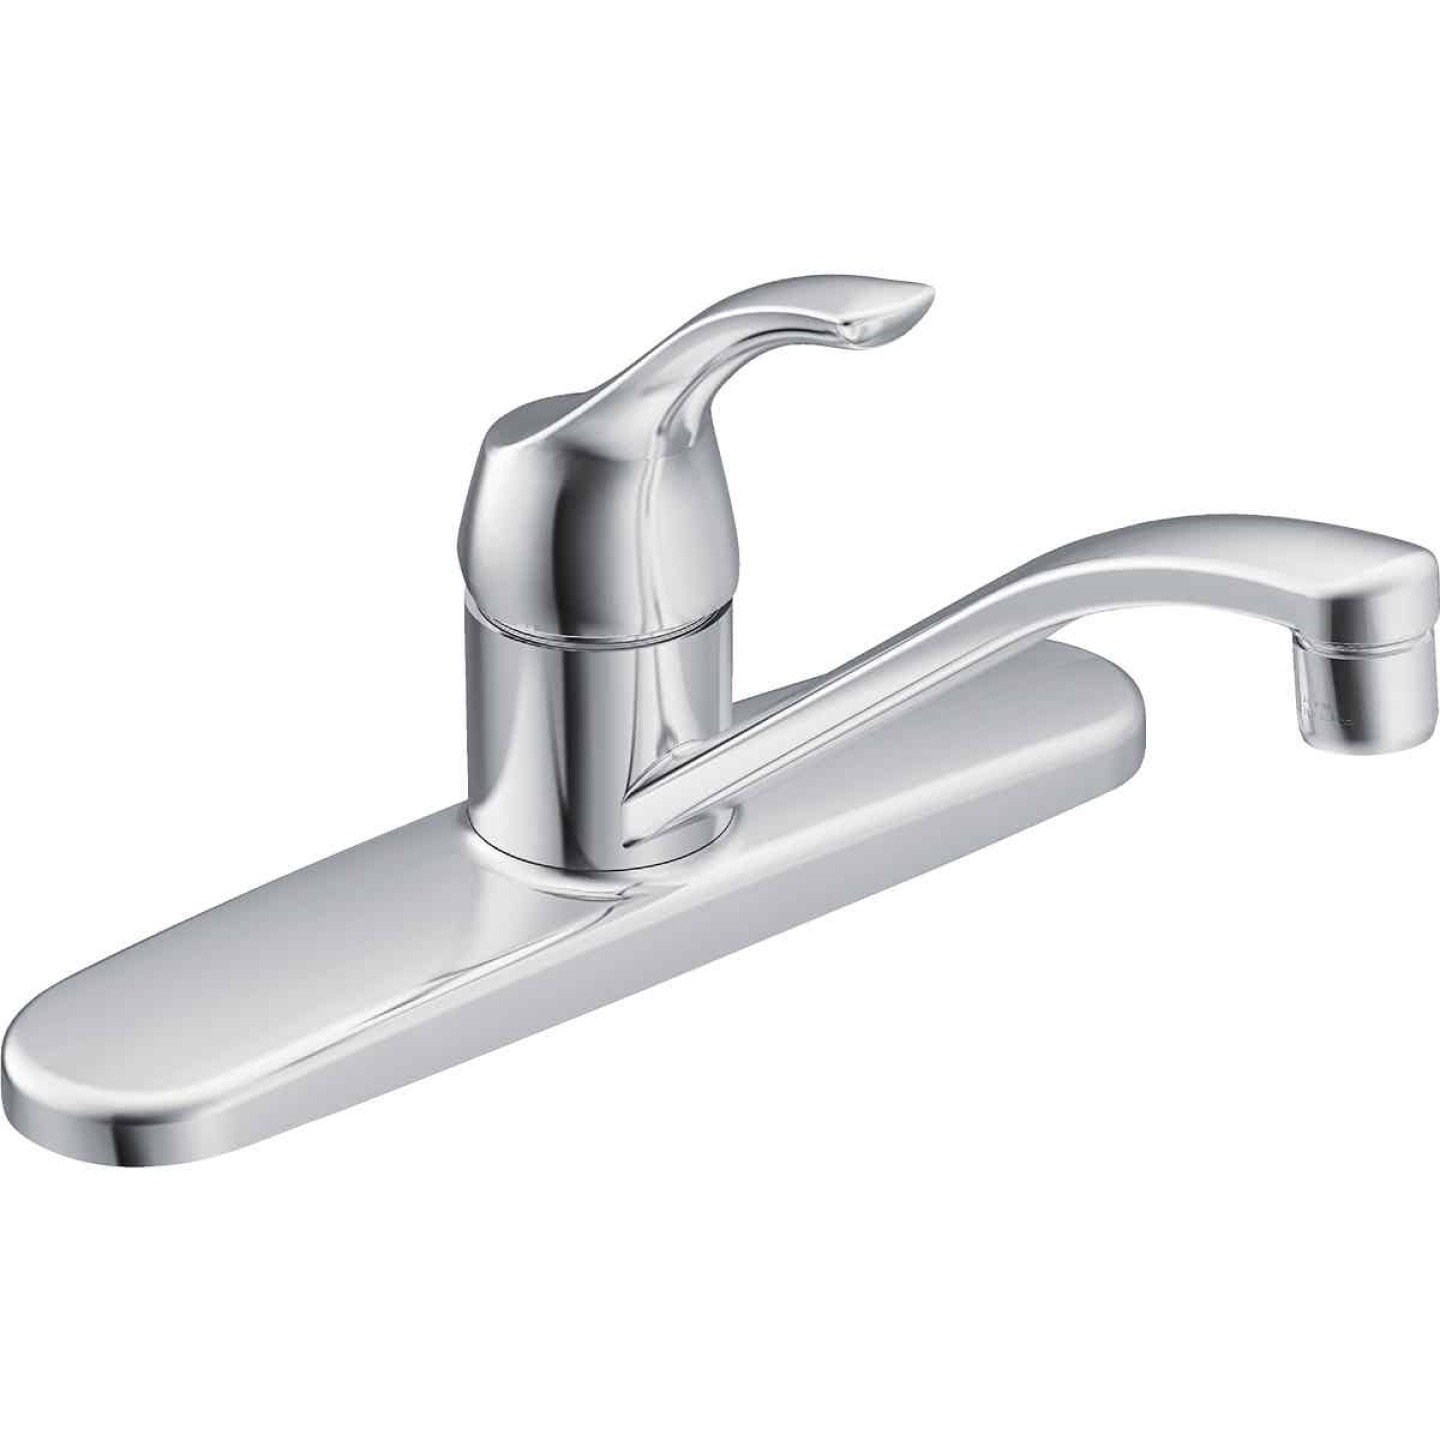 Moen Adler Single Handle Lever Kitchen Faucet, Chrome Image 1